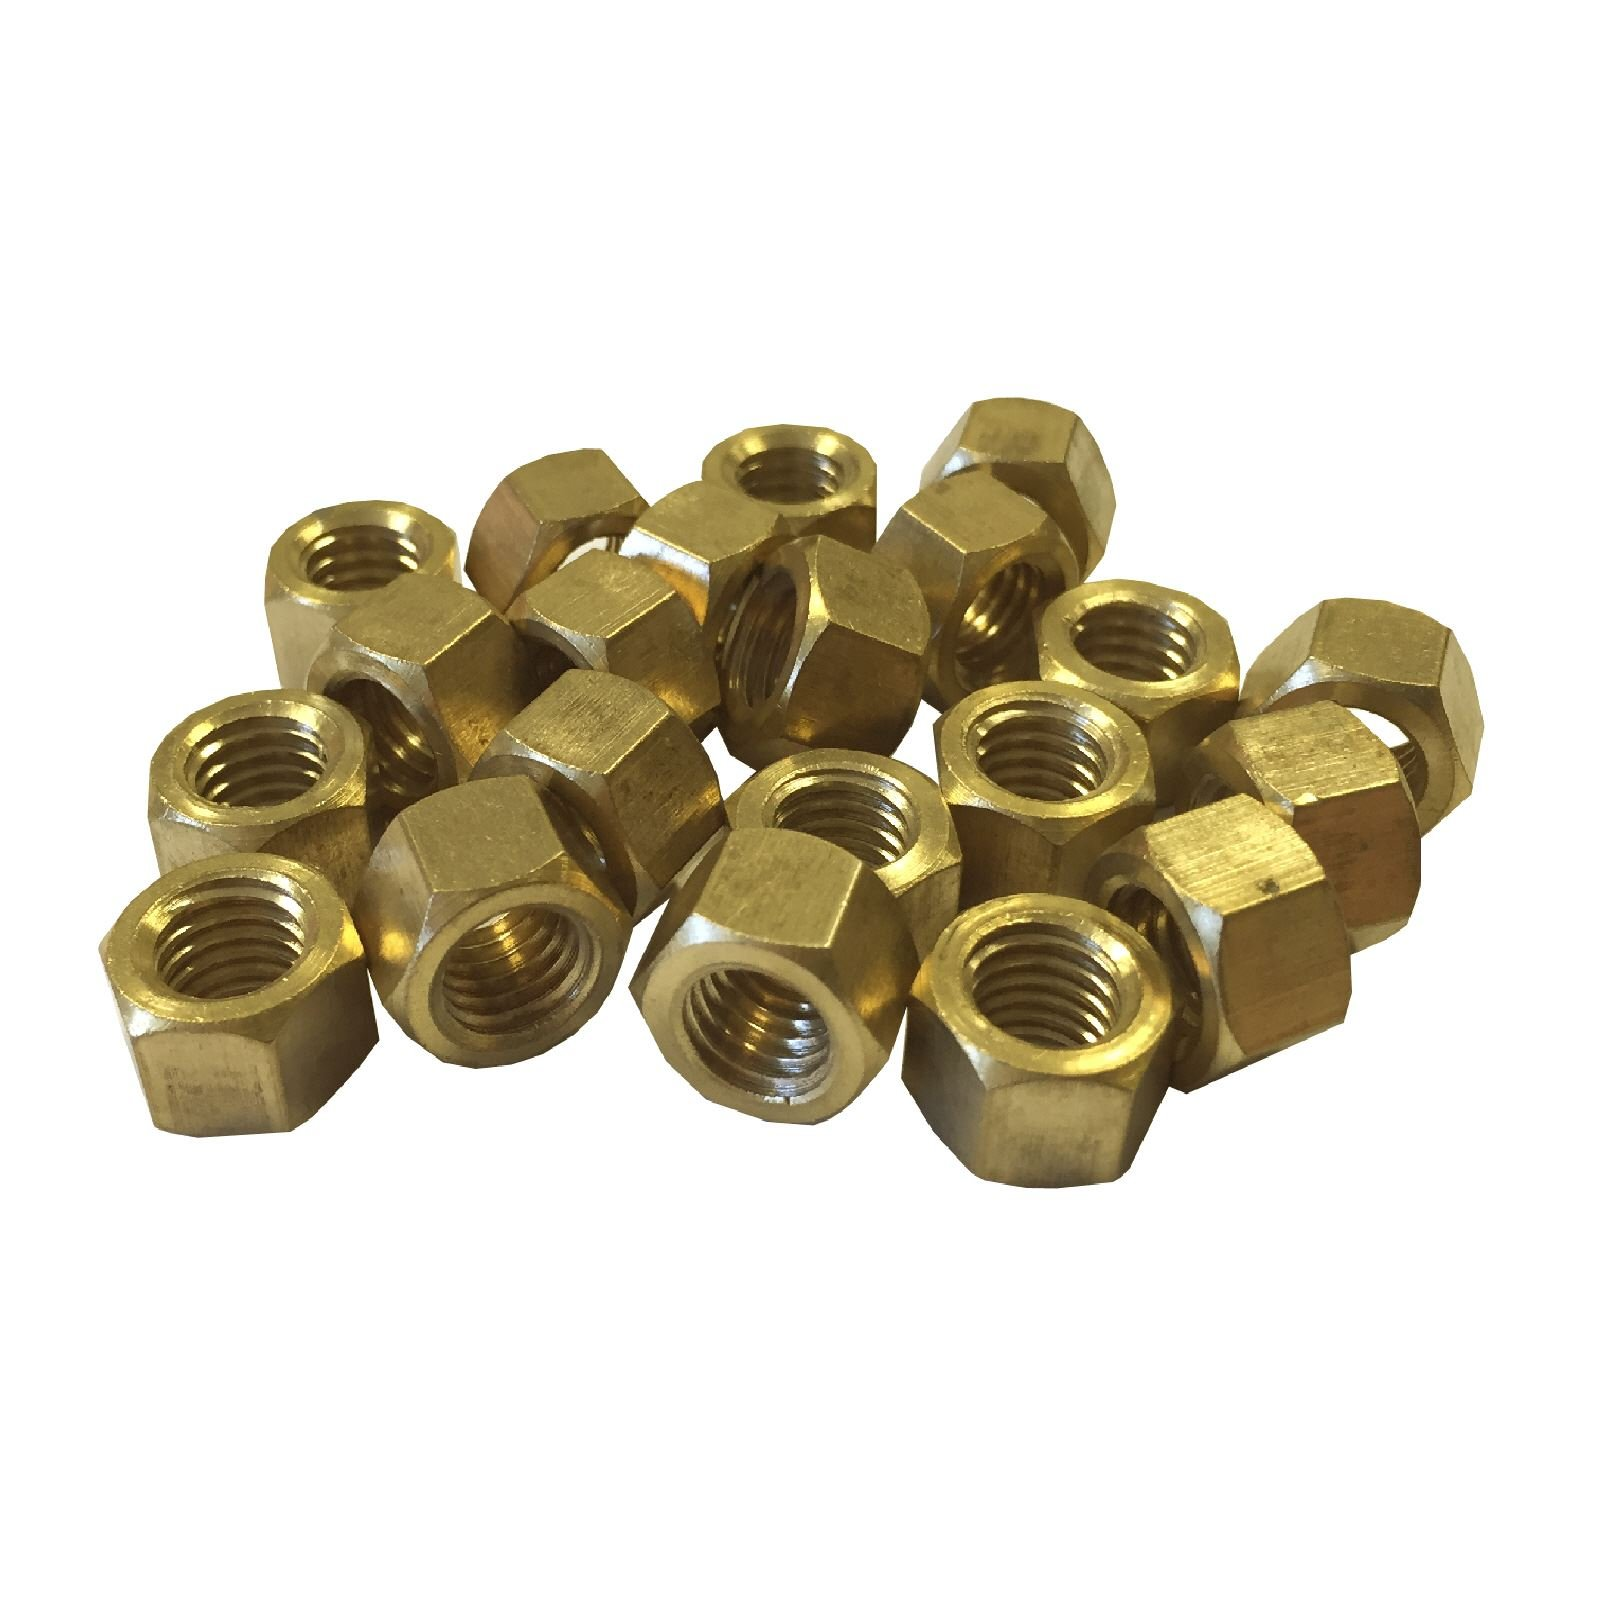 Forney 75560 Manifold 3-In-1 Brass Flat 1//4-Inch Female NPT Inlet with 3 1//4-Inch Female NPT Outlets